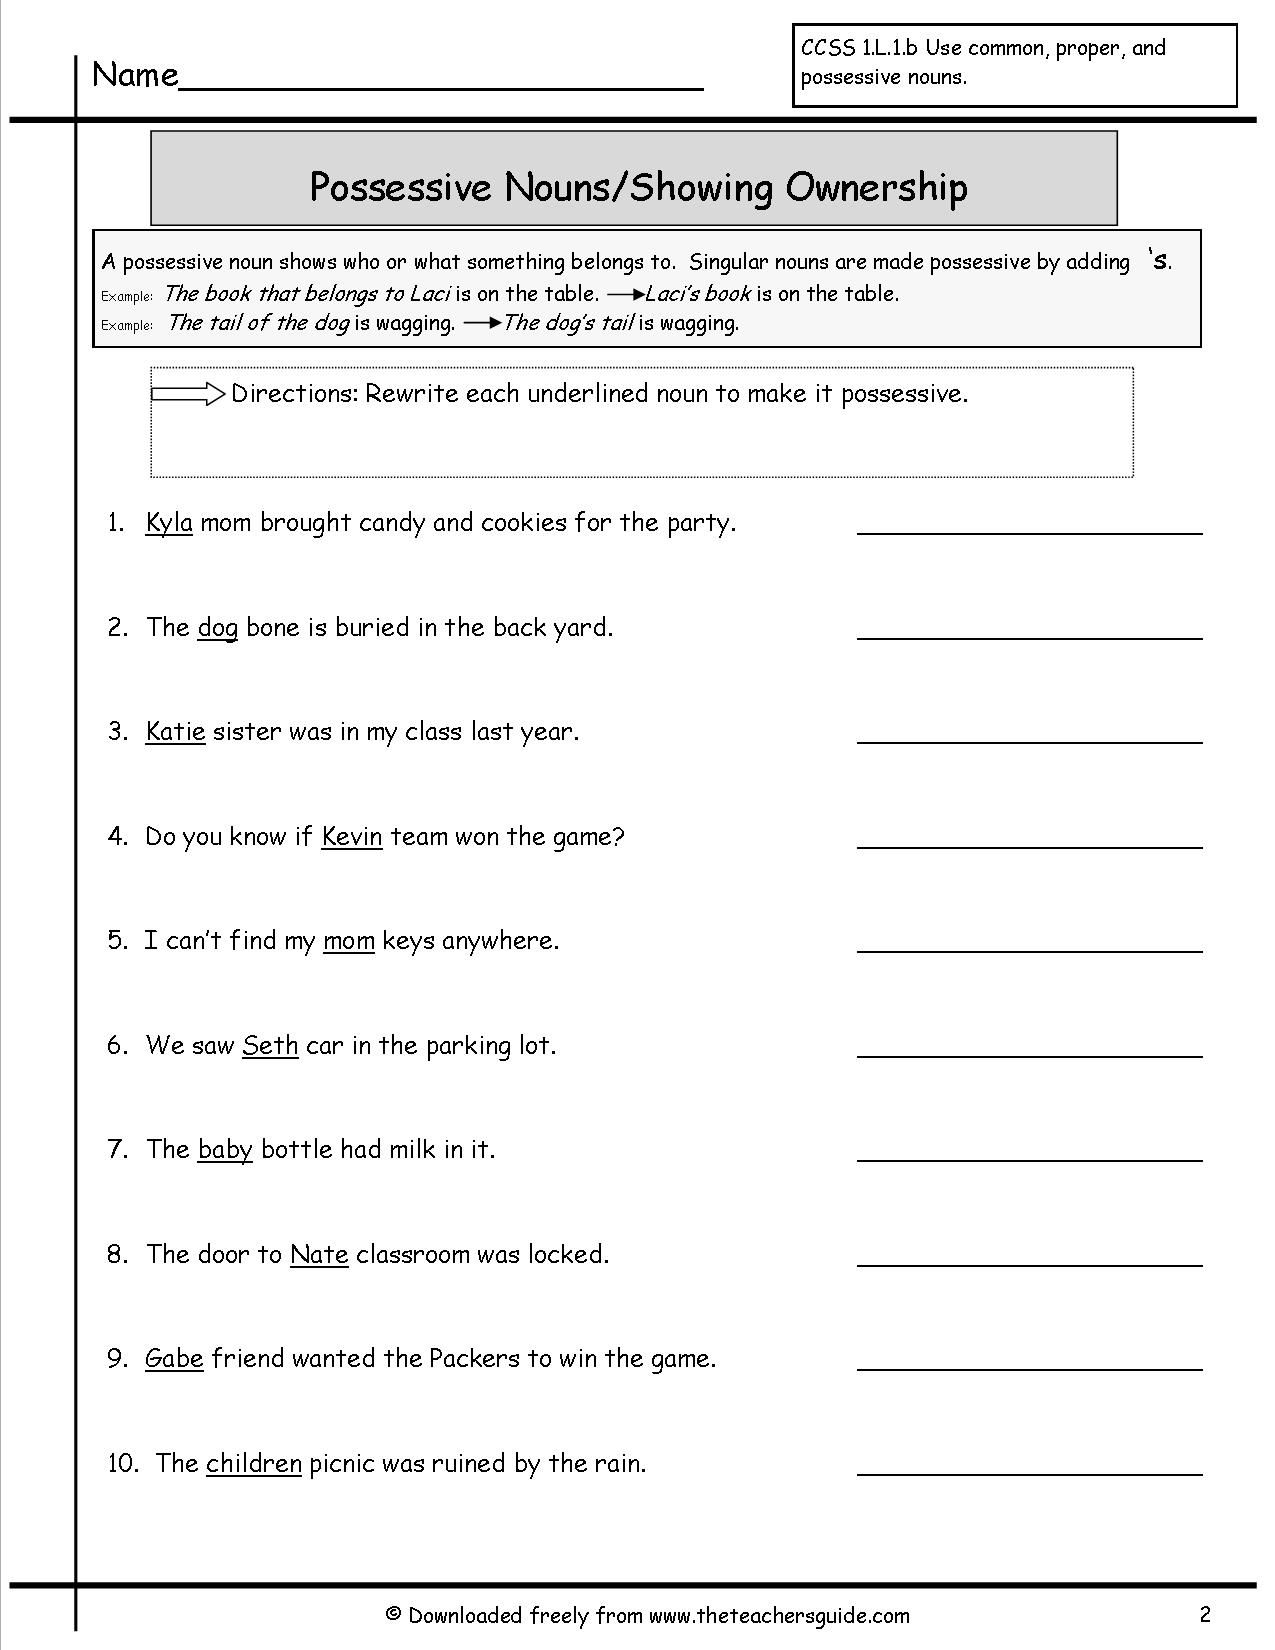 Possessive Nouns Worksheet